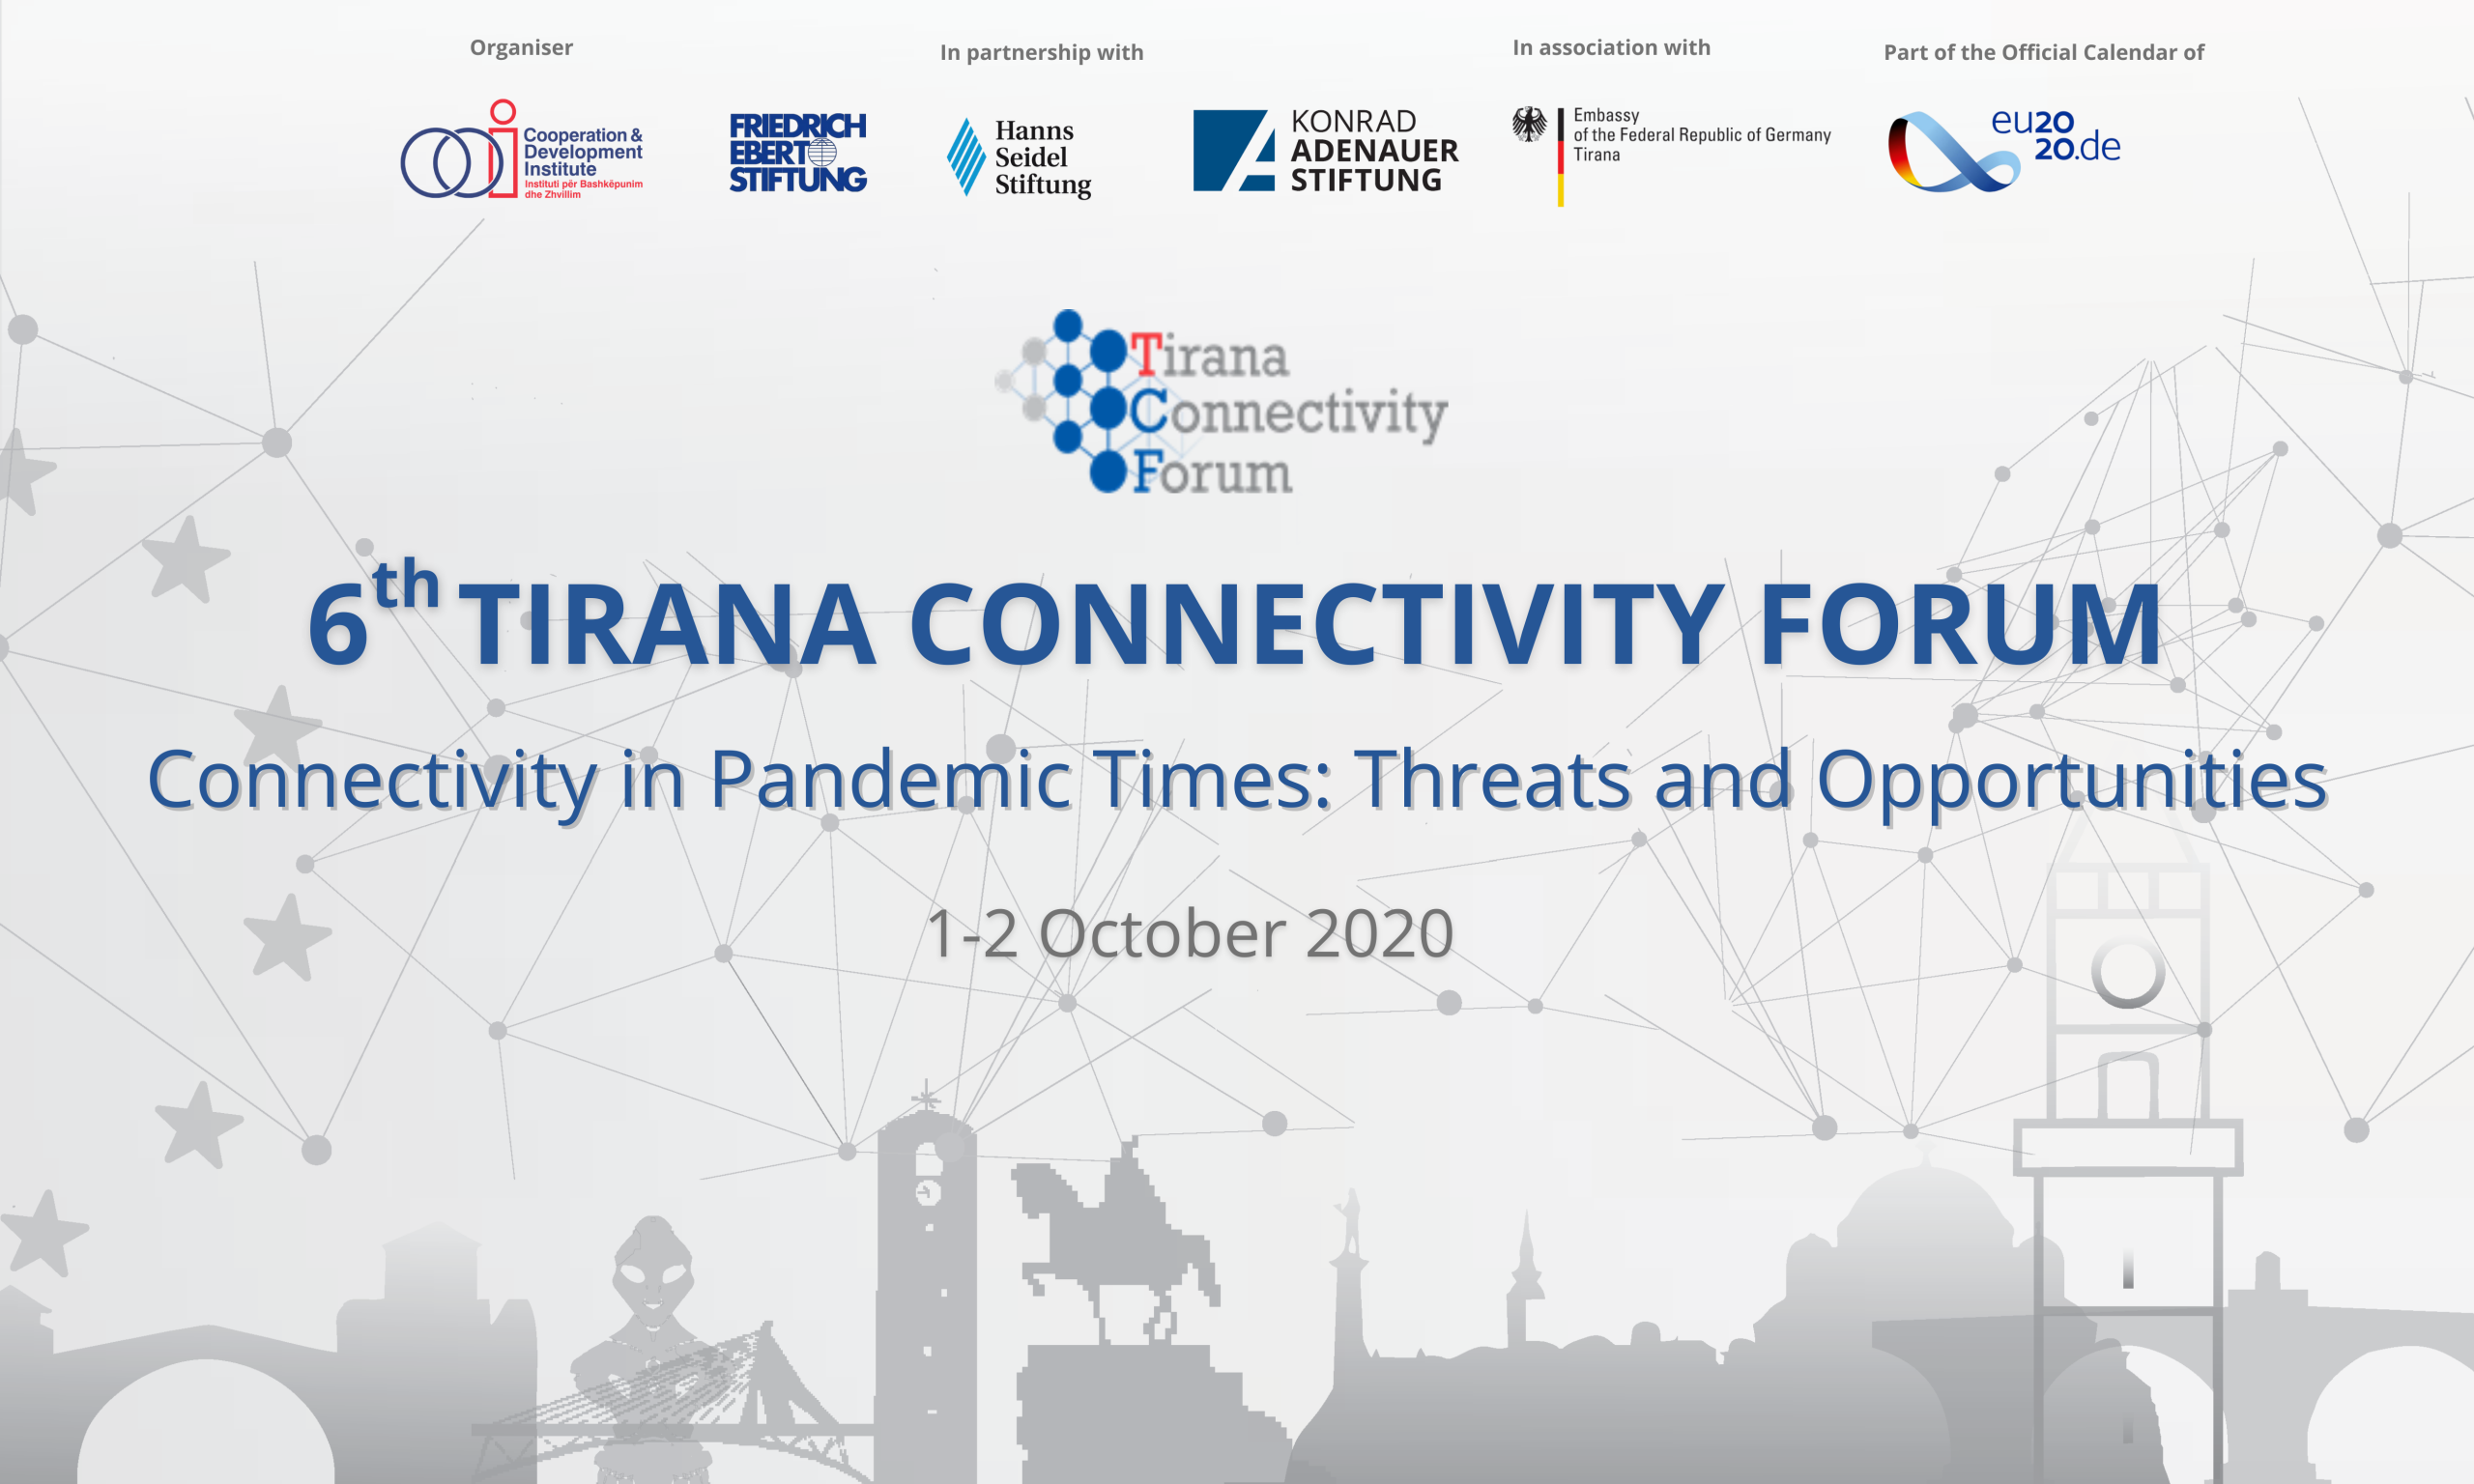 The 6th edition of TCF to take place online on 1-2 October 2020